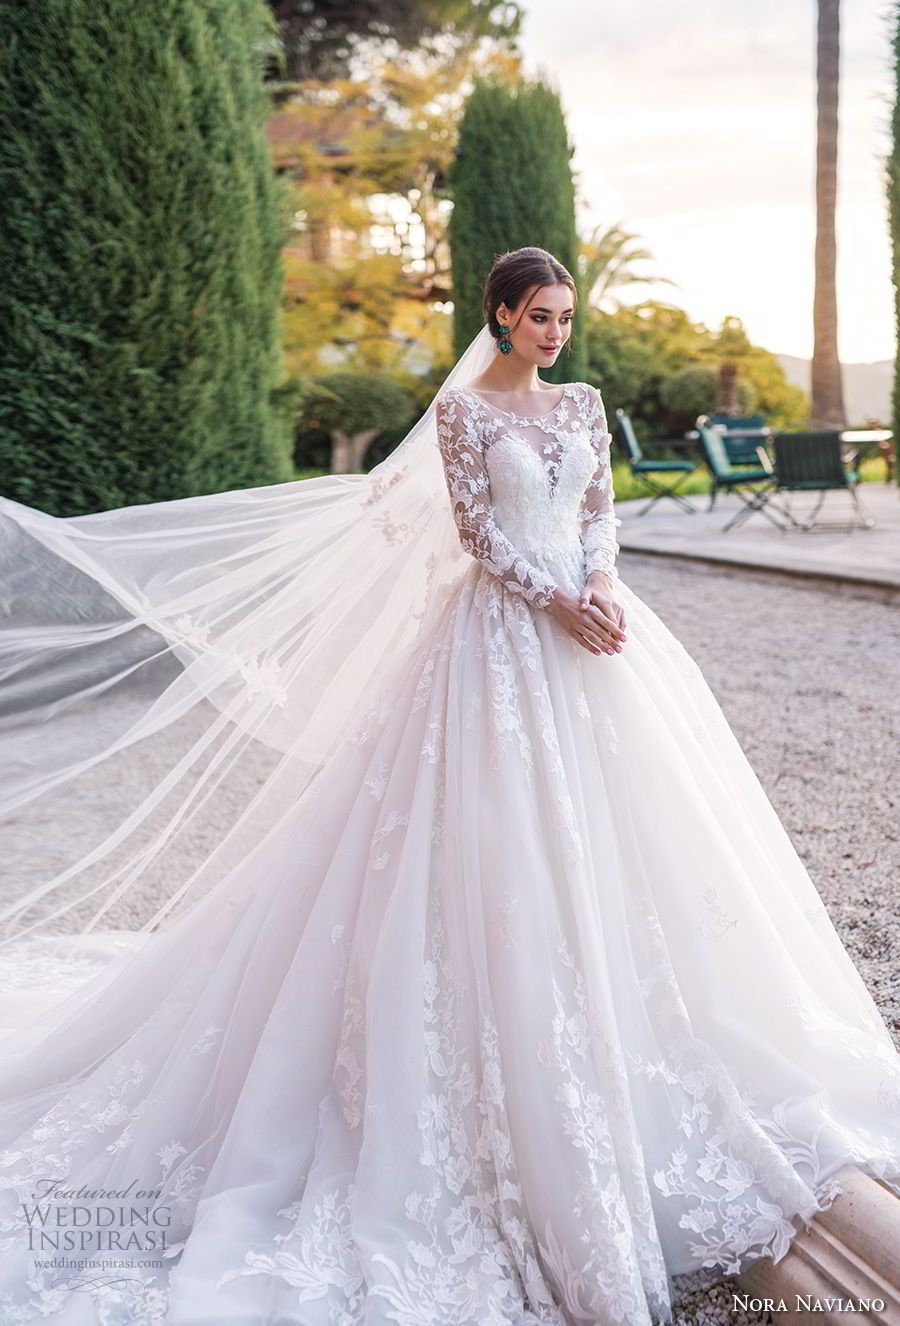 nora naviano 2019 bridal long sleeves illusion jewel sweetheart neckline heavily embellished bodice princess ball gown a  line wedding dress royal train (1) mv